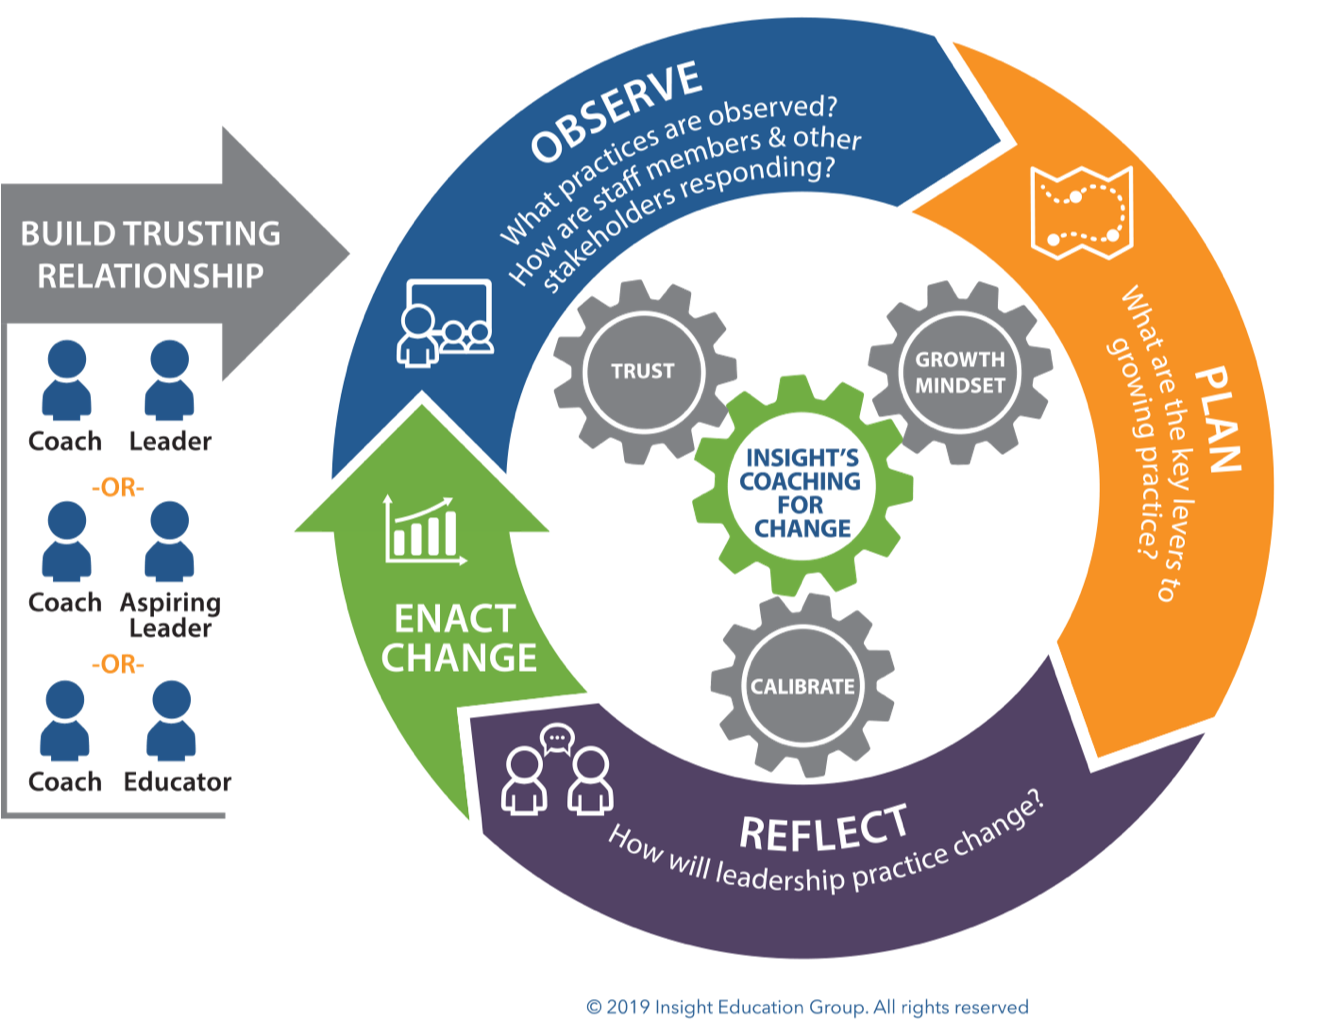 Insight's Coaching for Change model